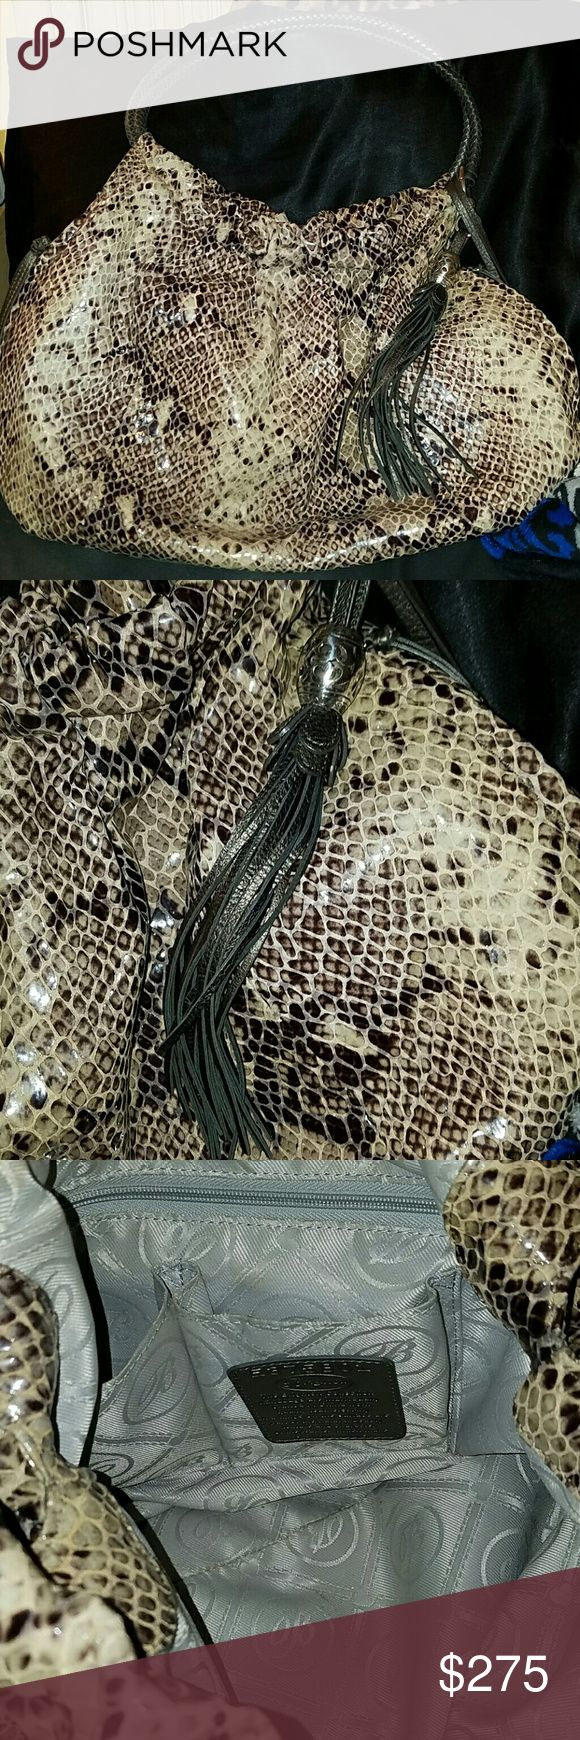 Brighton Nolita snakeskin 100% authentic  Used a handful of times No major signs of wear Slouchy hobo style  Leather Braided straps Comes with box and dust bag Brighton Bags Hobos